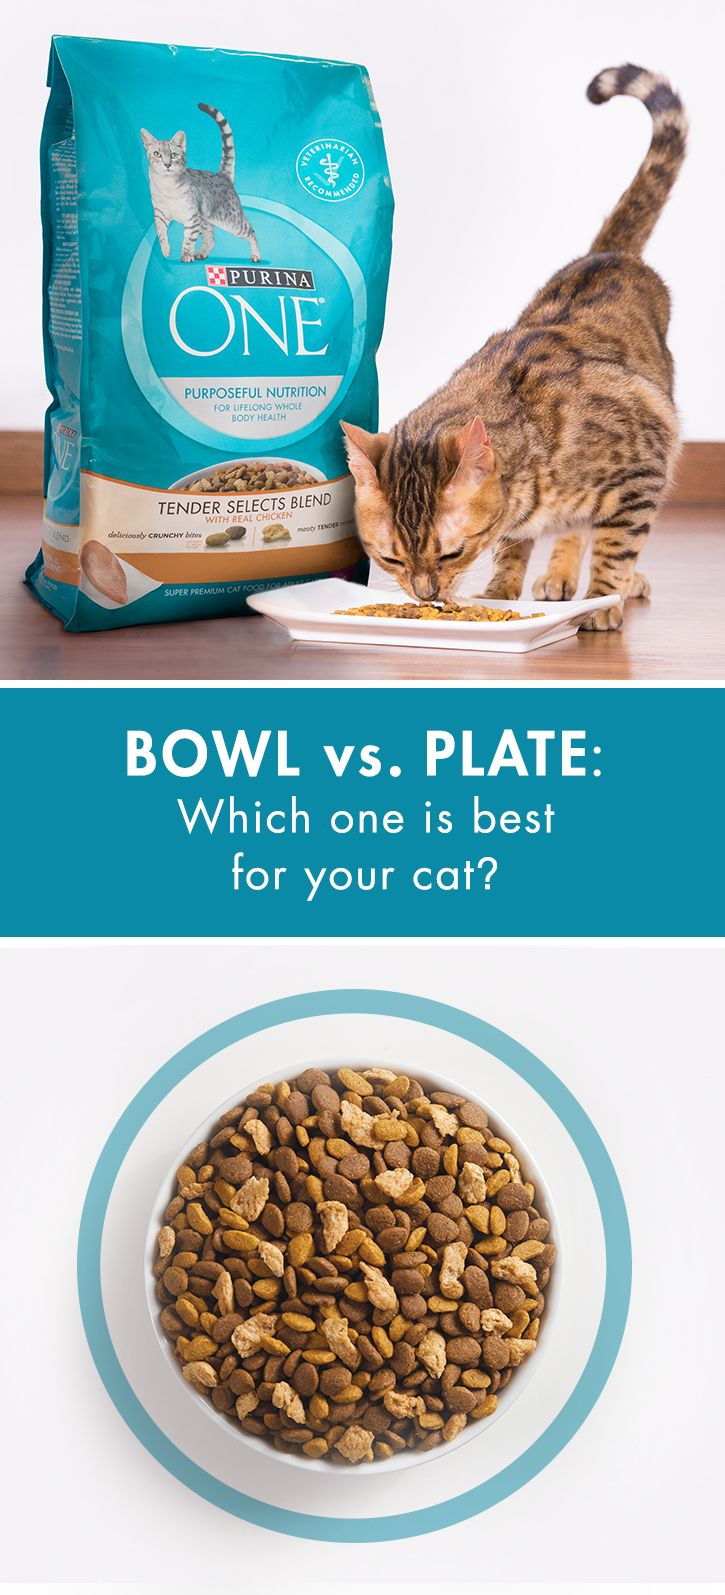 When serving Purina ONE Tender Selects Blend With Real Chicken, use a dish that works with your cat's whiskers, like a shallow bowl. Choose a dish large enough to hold a day's worth of food, with a lip full enough to keep food contained while letting your cat observe the room. Have a messy eater? Try a plate large enough to catch stray kibble. Get a bag of Tender Selects Blend With Real Chicken today, and feed her a delicious blend of crunchy bites & meaty tender morsels.